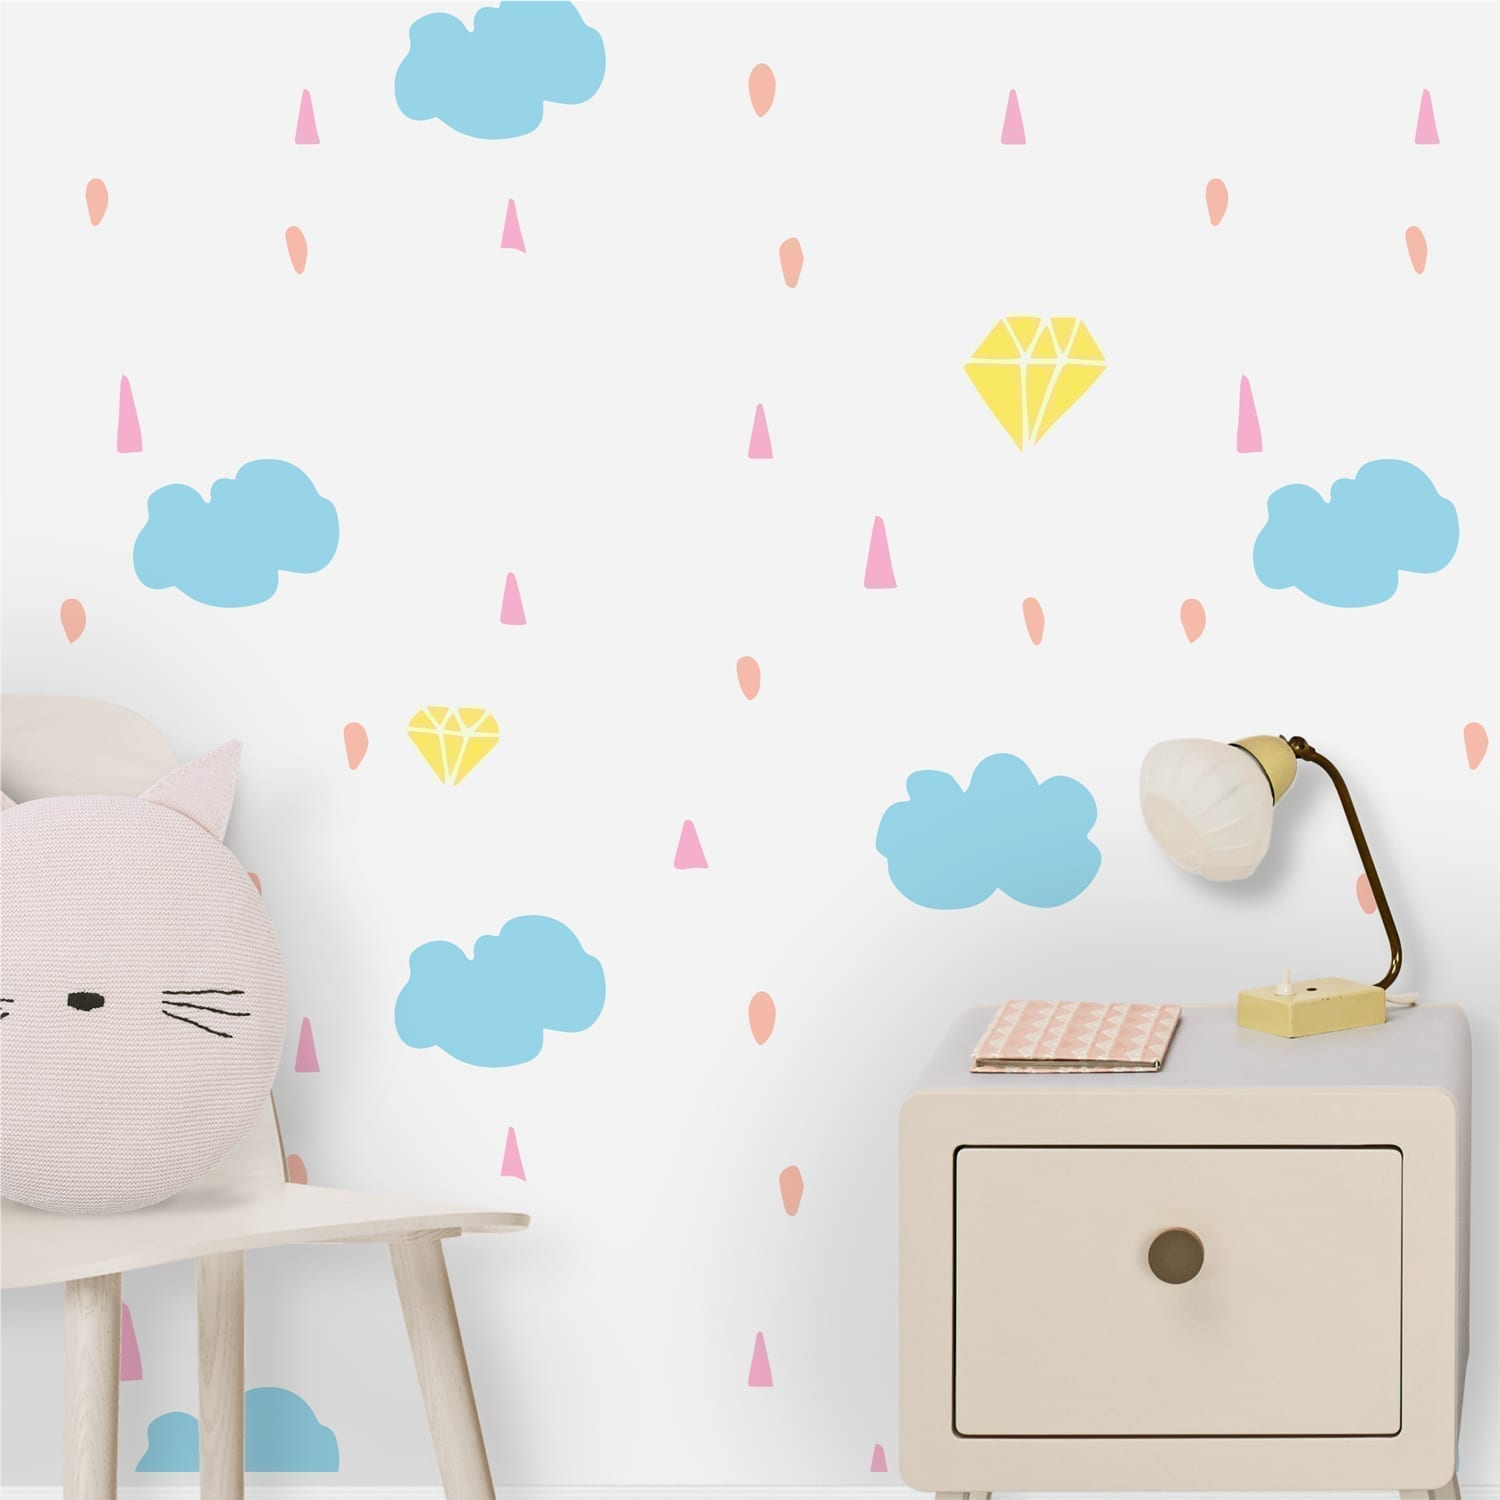 Rainbow Wallpaper for Nursery Decor